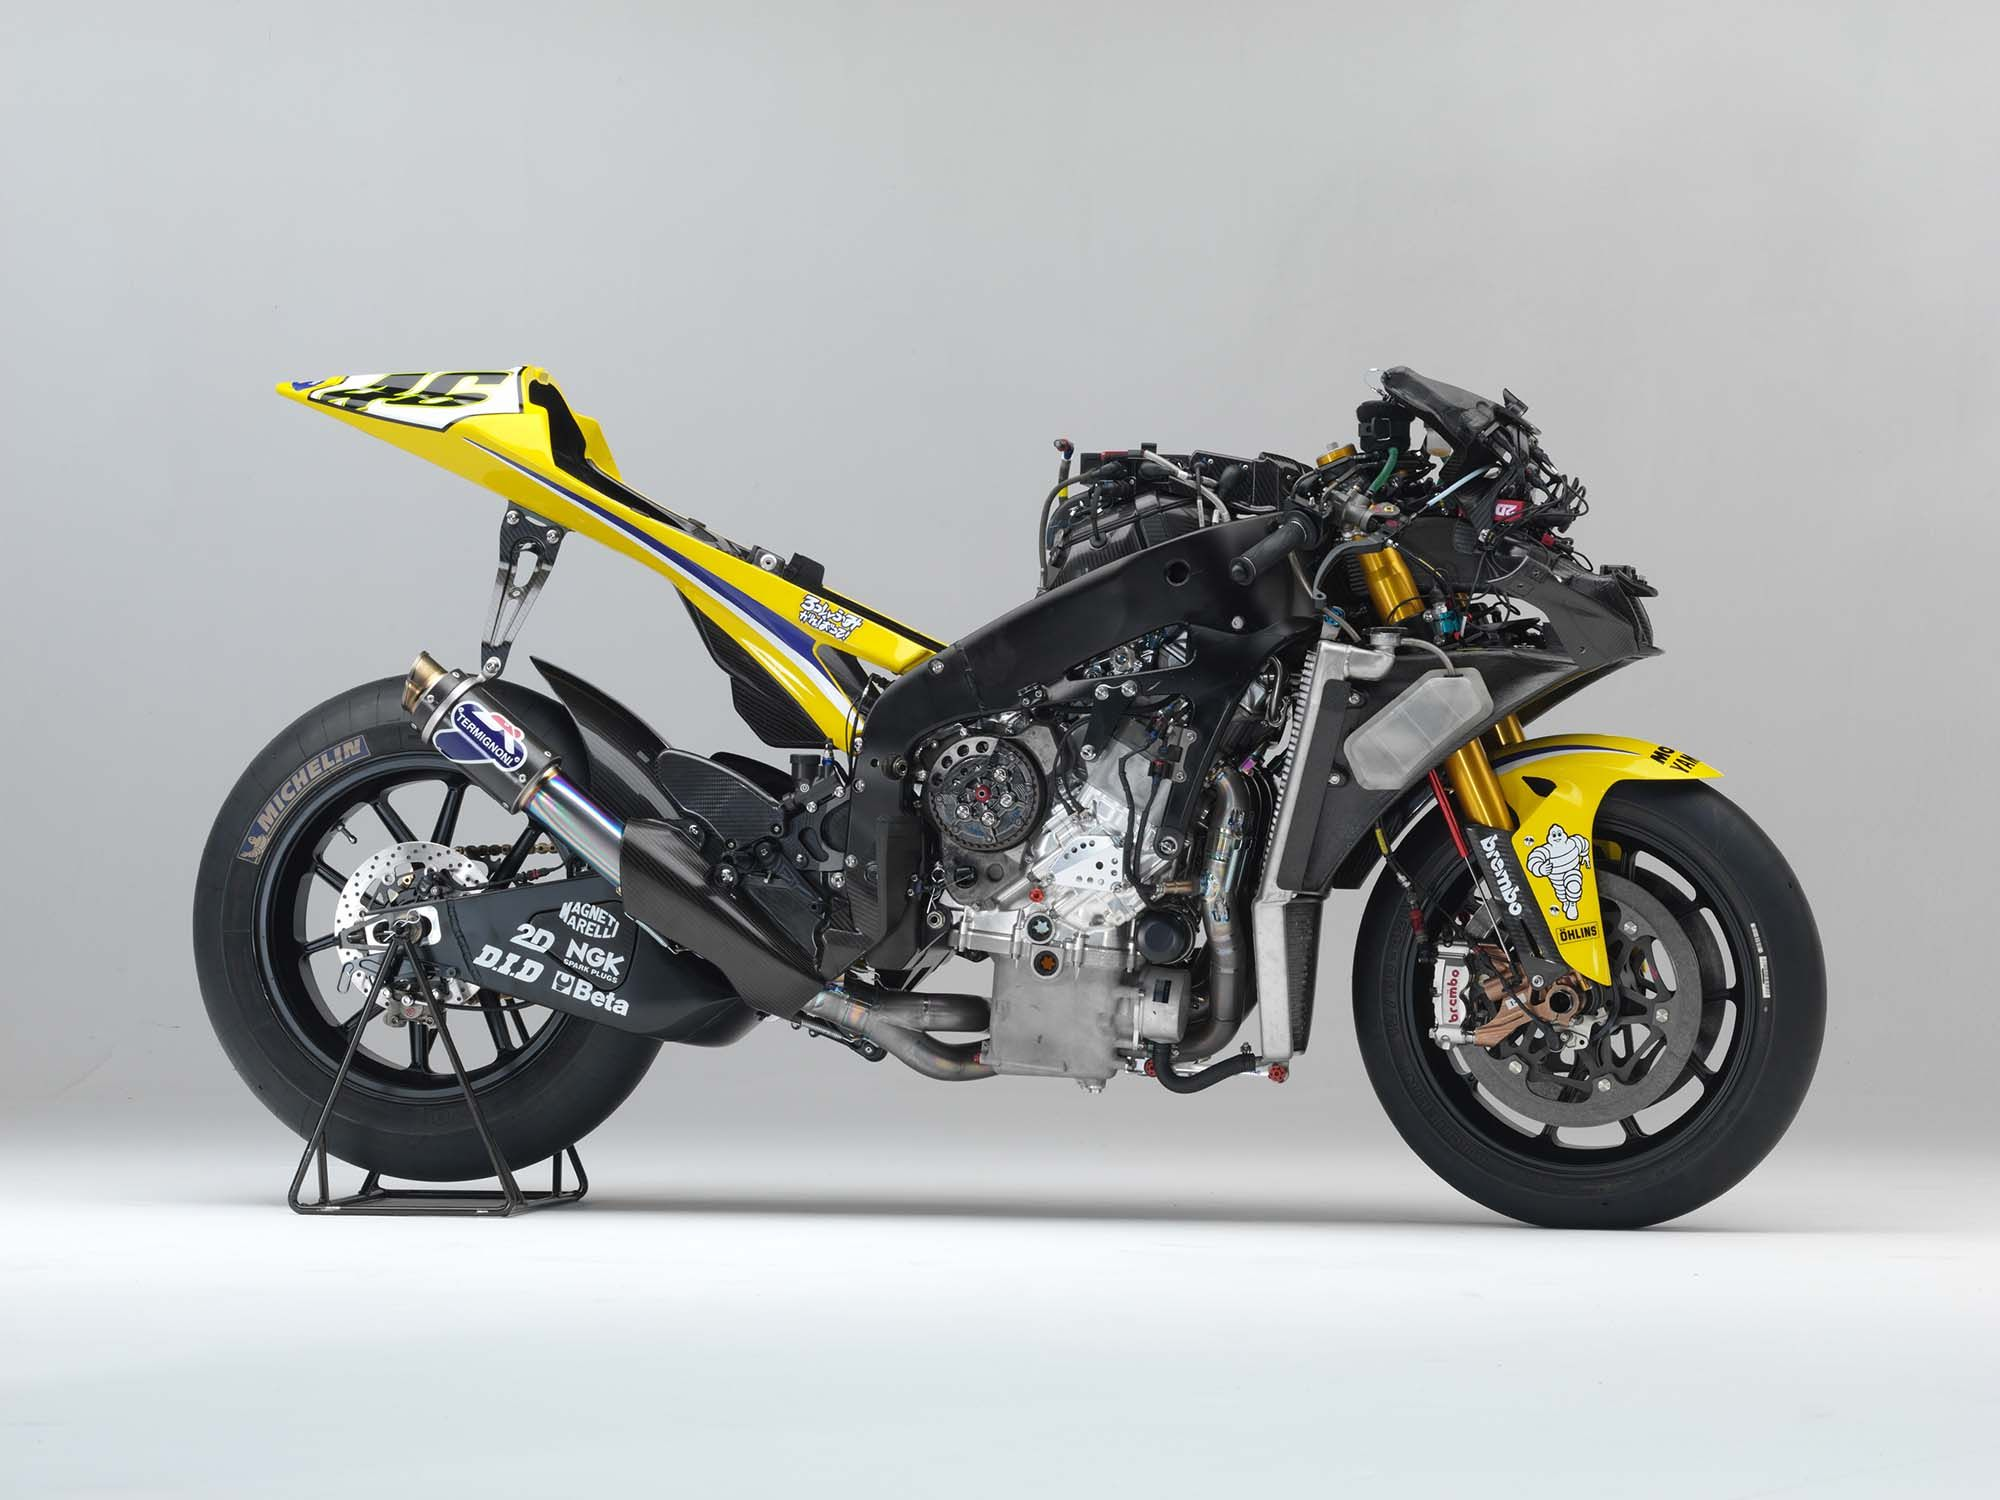 Valentino-rossi-2006-yamaha-yzr-m1-right side naked detail